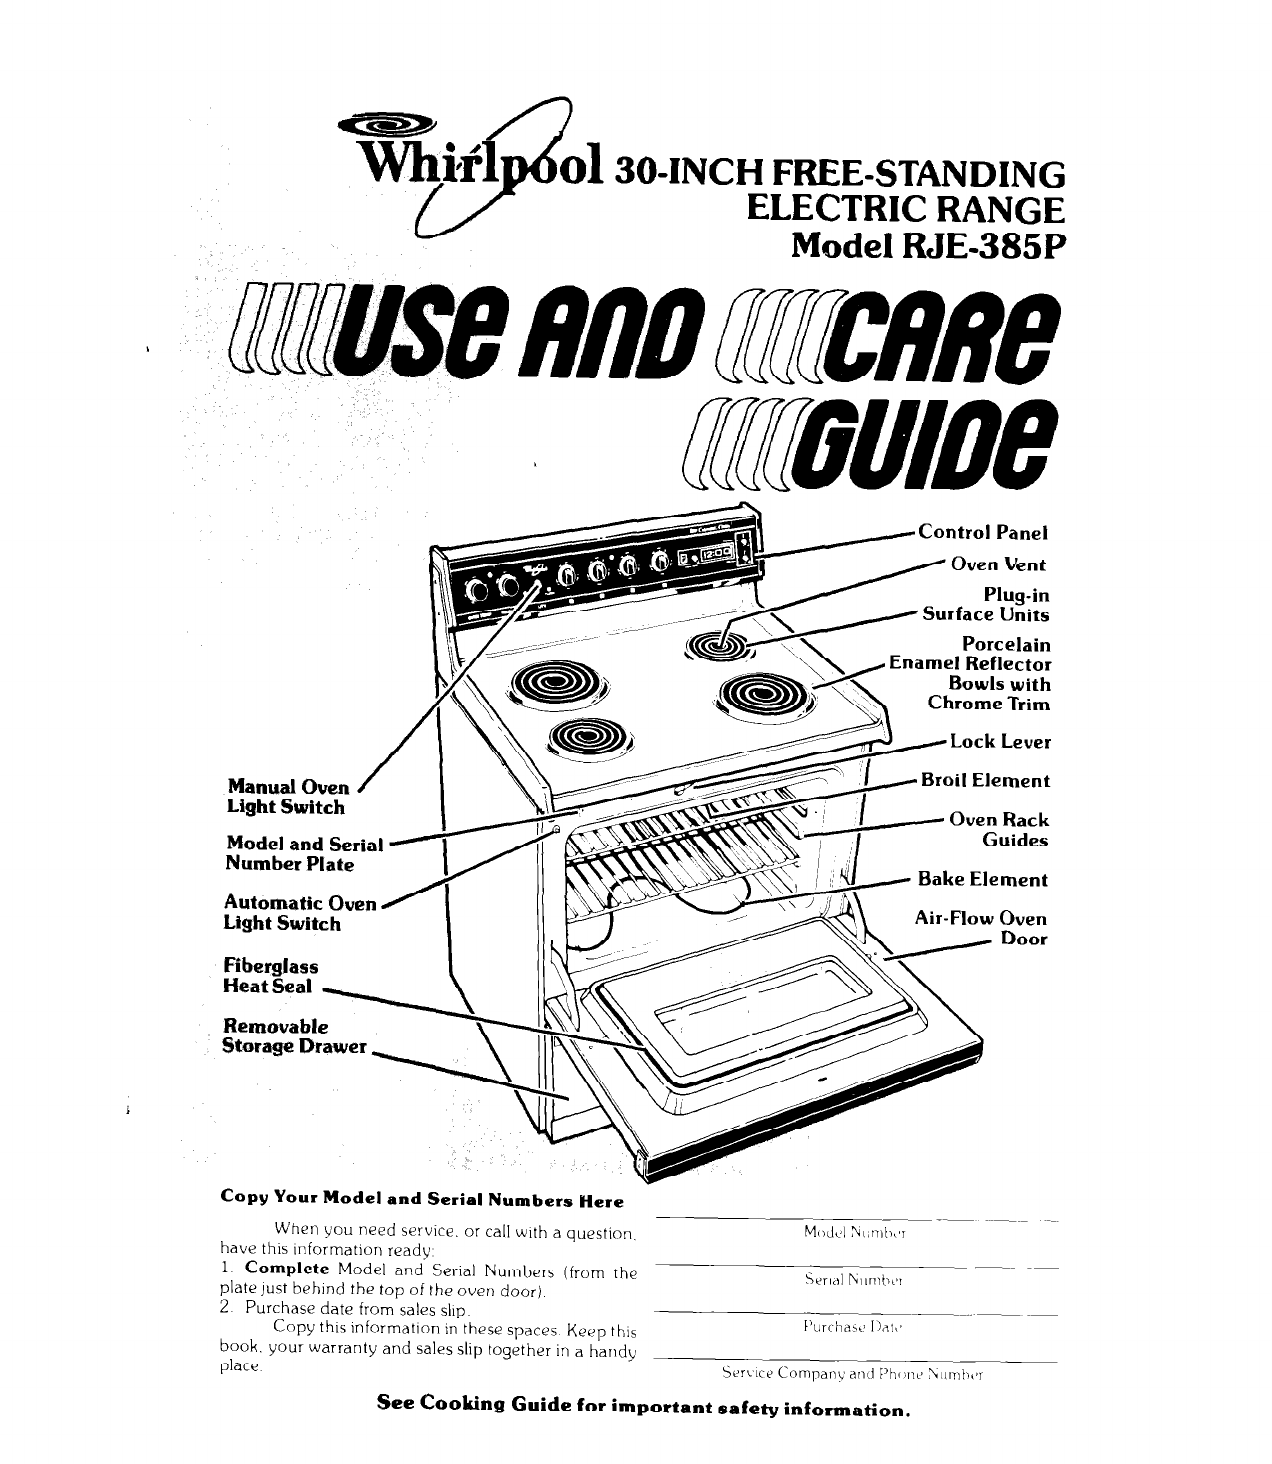 Whirlpool Stove Instruction Manual